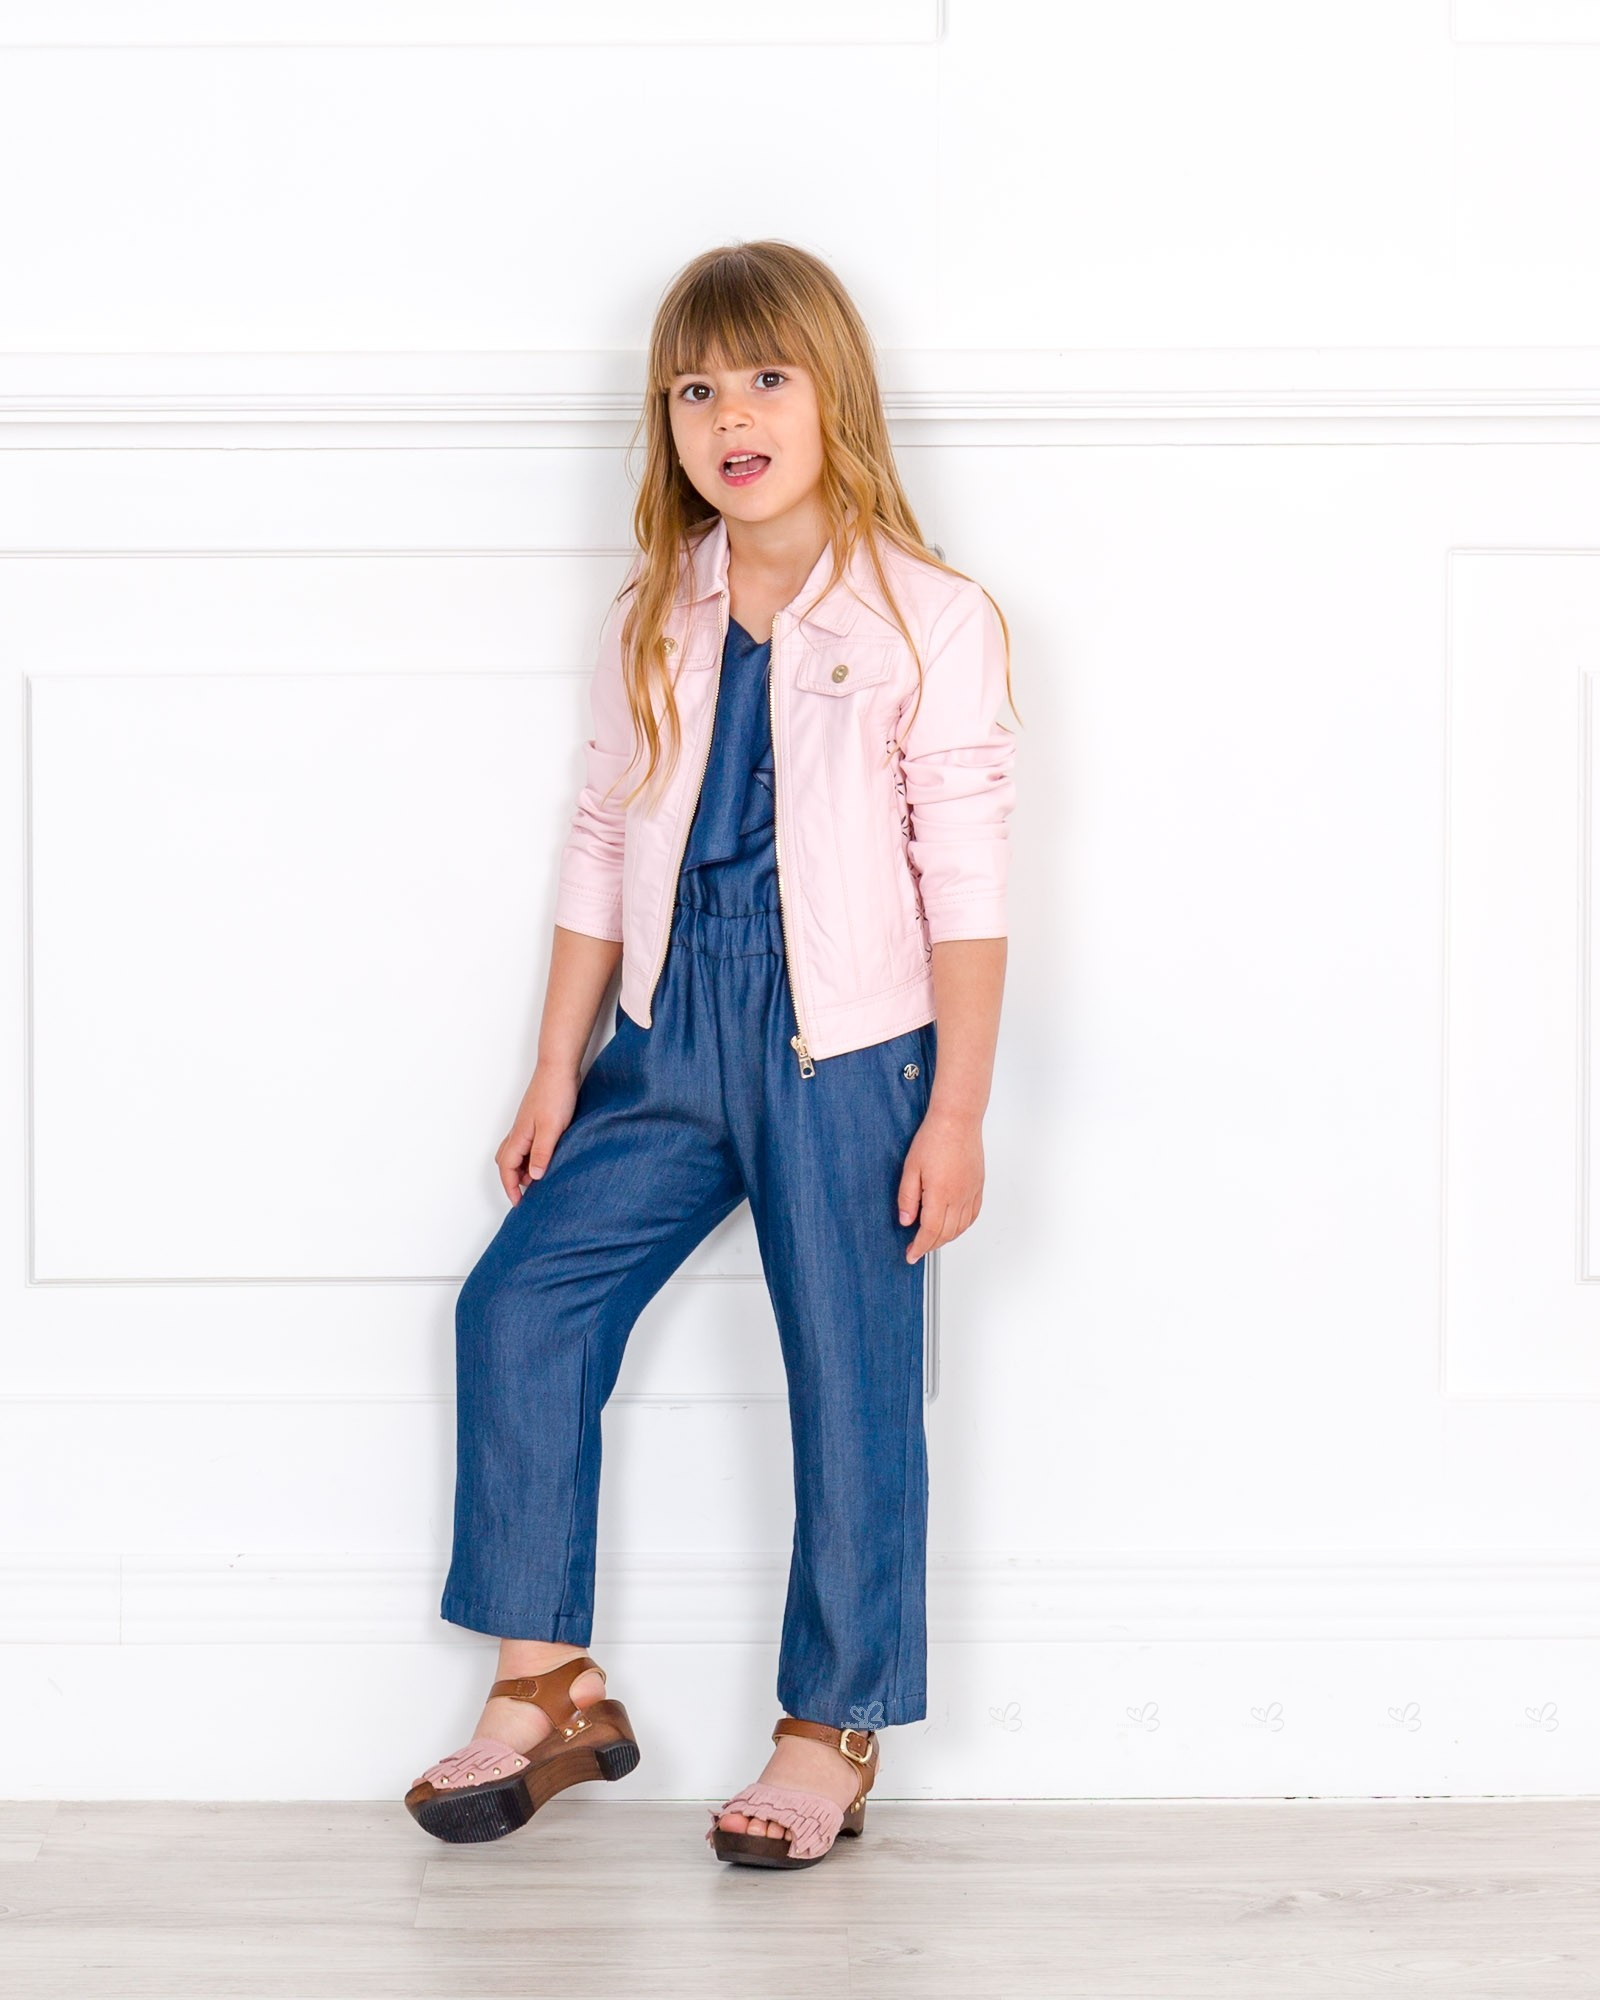 Outfit Mono Chambray Azul U0026 Cazadora Rosa - Outfits | Missbaby